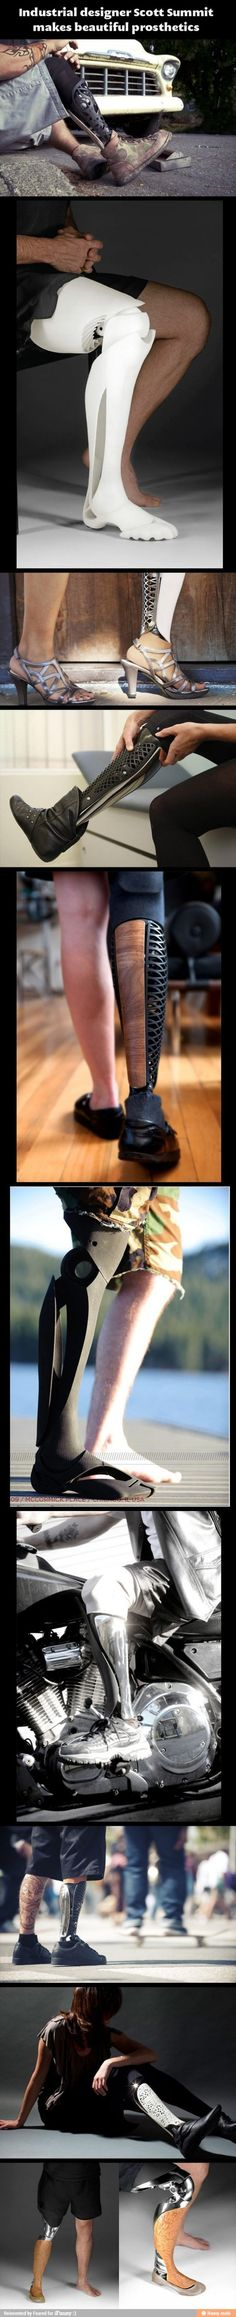 Awesome Industrial Designer! Changing the face of Prosthetics